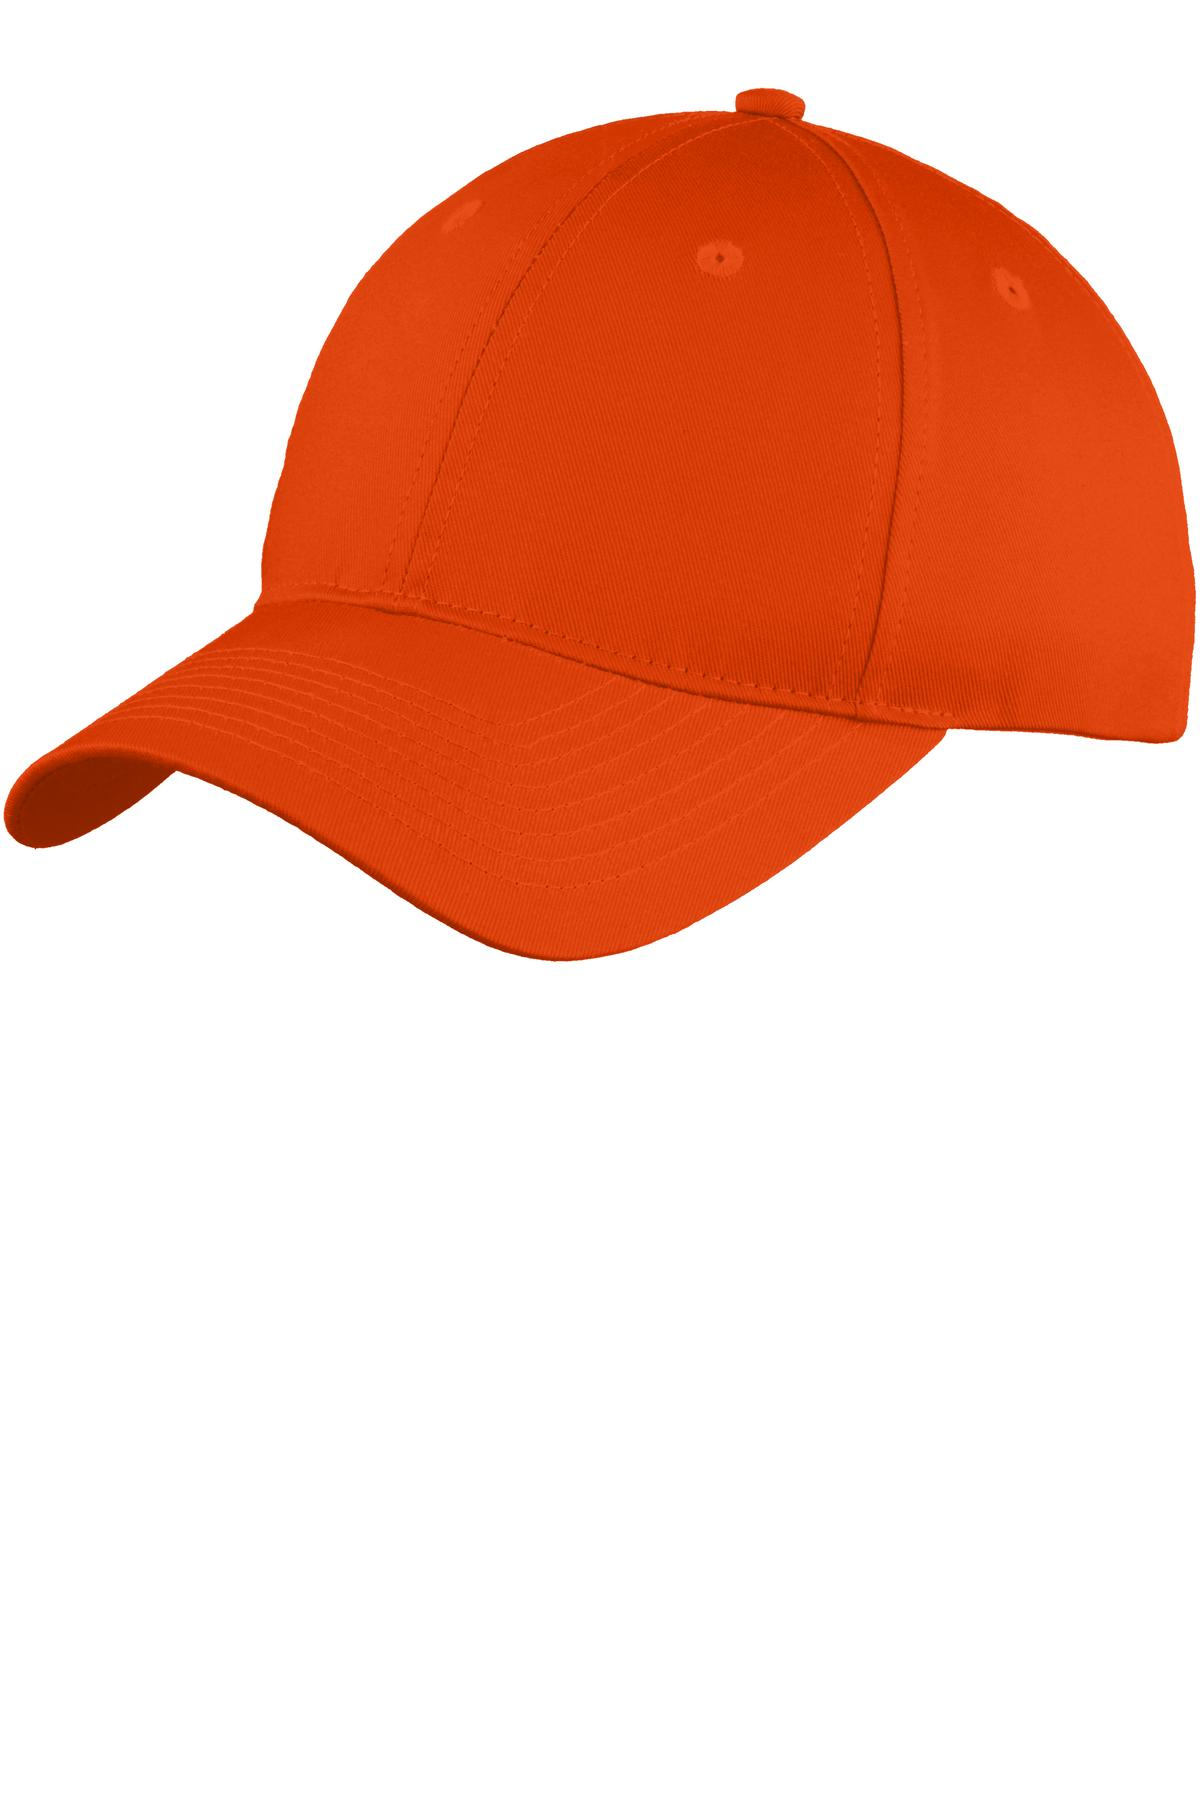 Port & Company ®  Six-Panel Unstructured Twill Cap. C914 - Orange